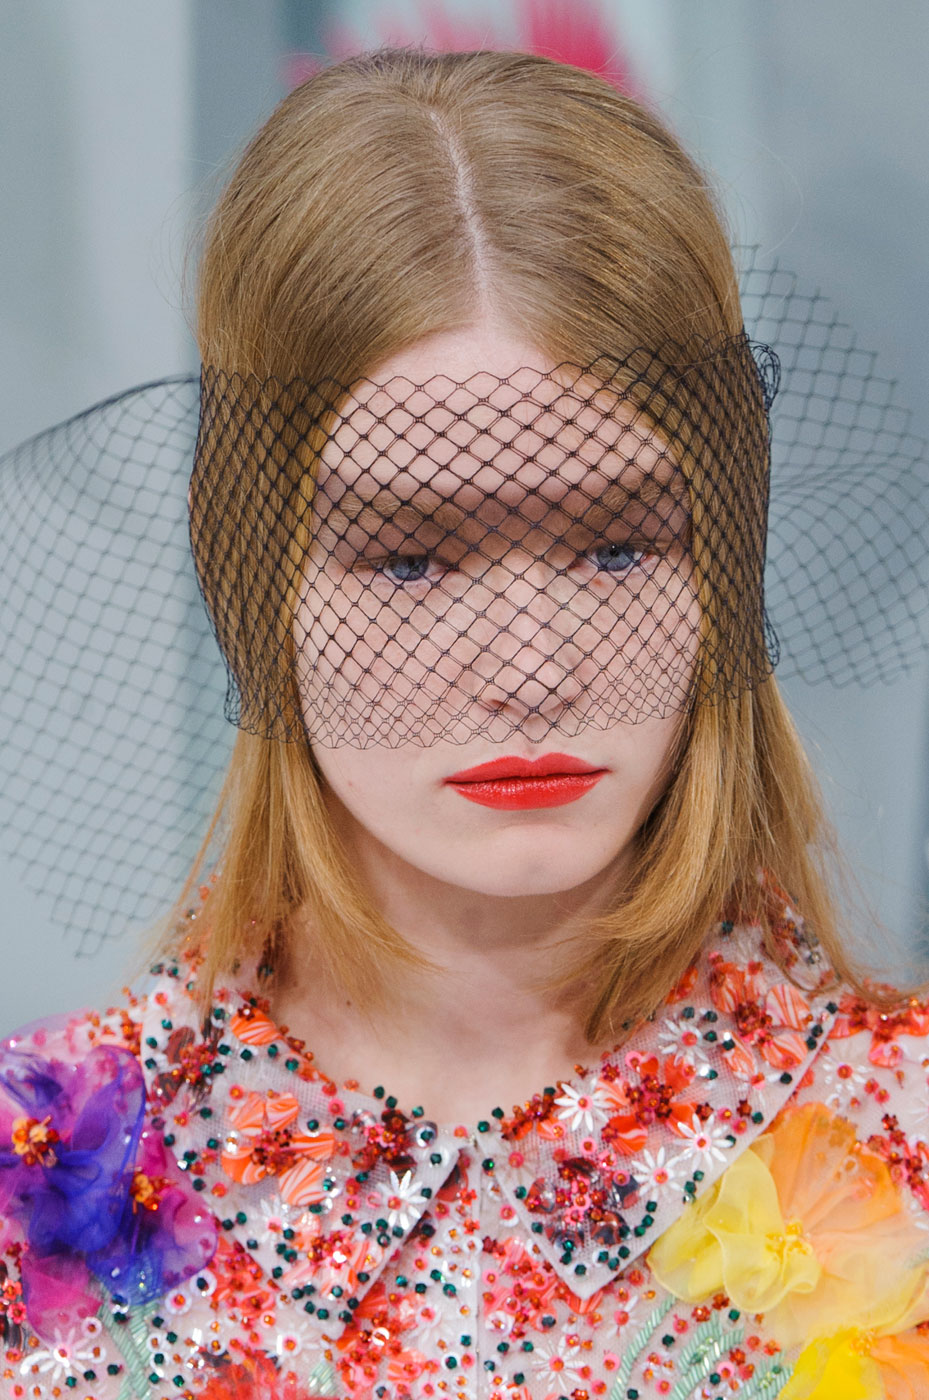 Chanel-fashion-runway-show-close-ups-haute-couture-paris-spring-summer-2015-the-impression-092